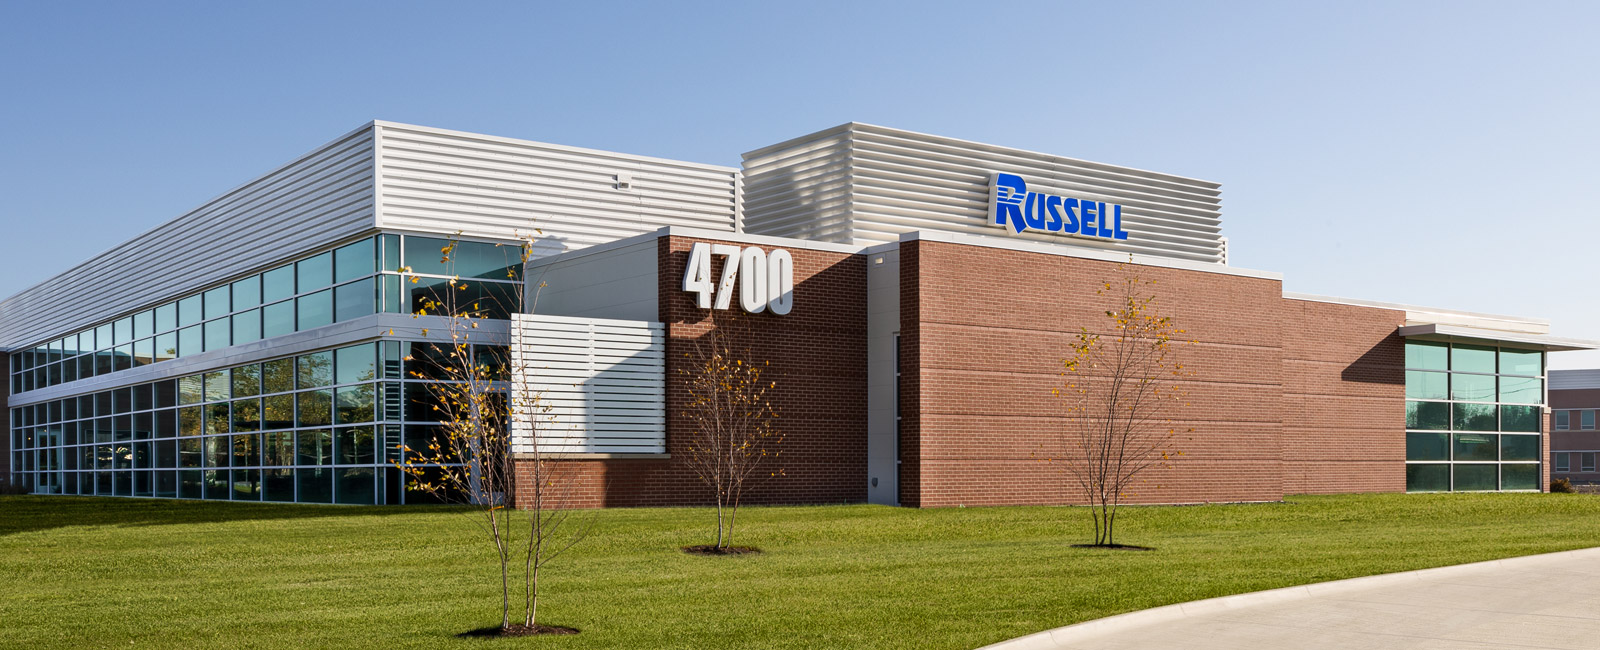 Russell Construction Headquarters 4700